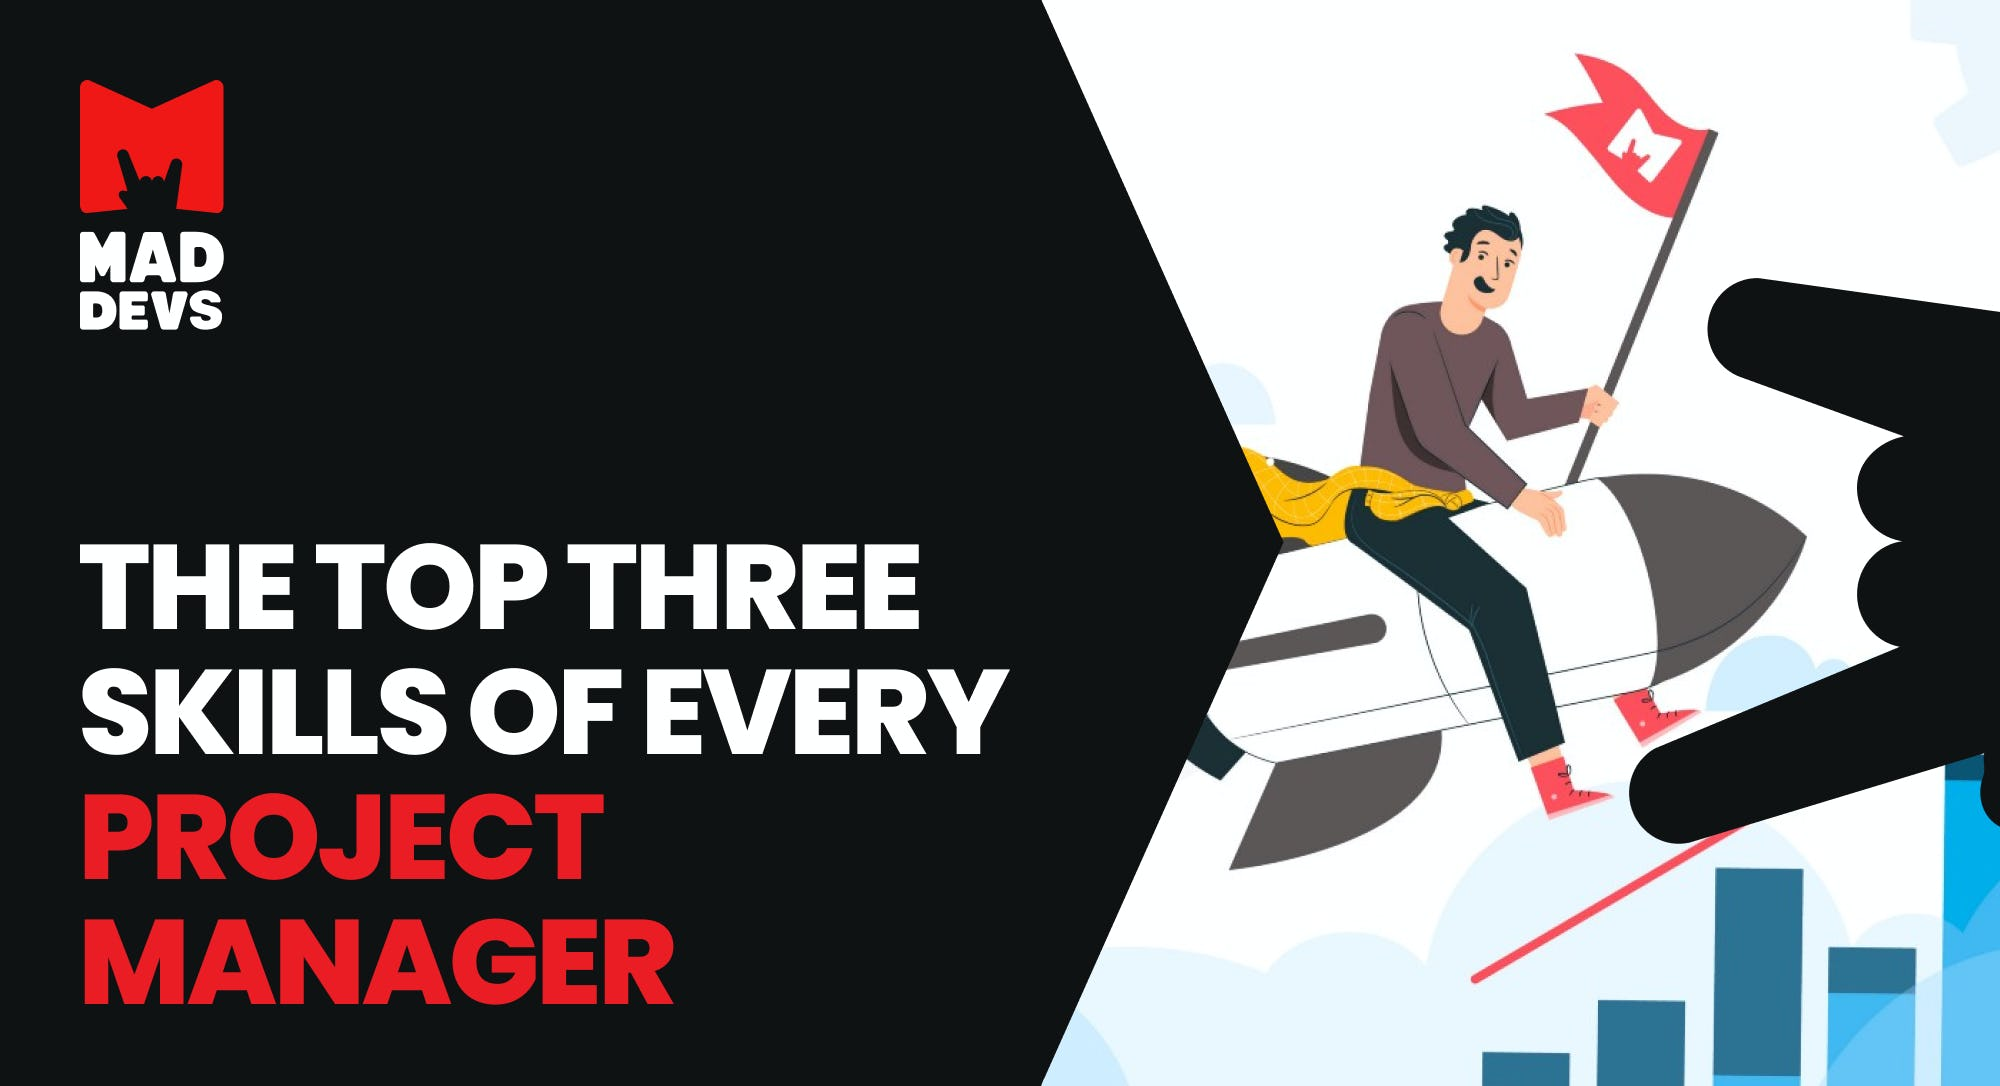 The Top Three Skills Every Successful Project Manager Needs to Focus On.